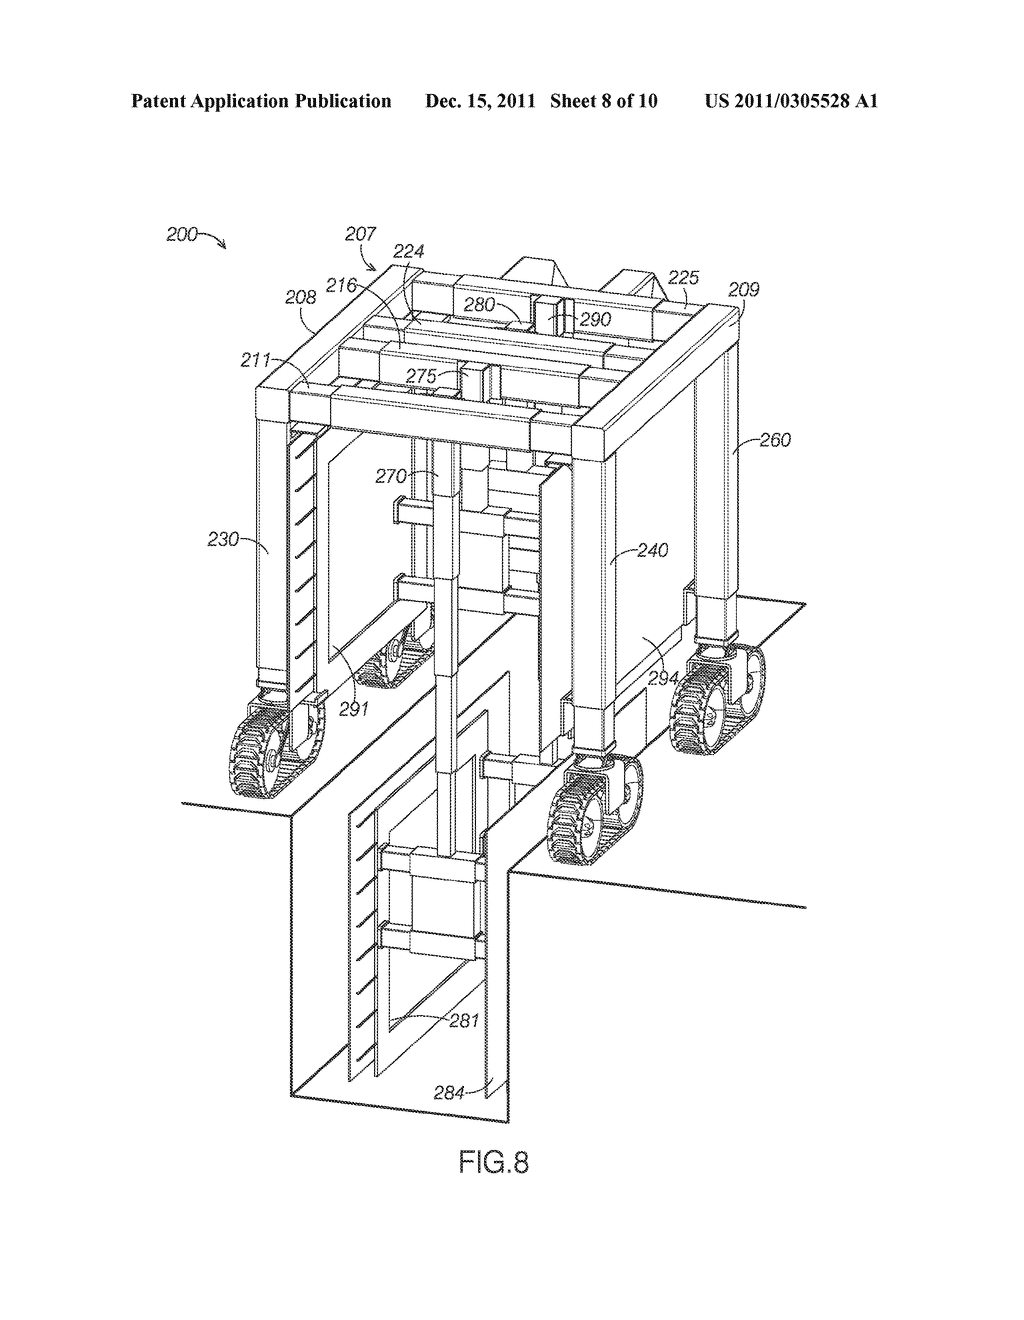 hight resolution of trench shoring apparatuses and methods diagram schematic and image 09